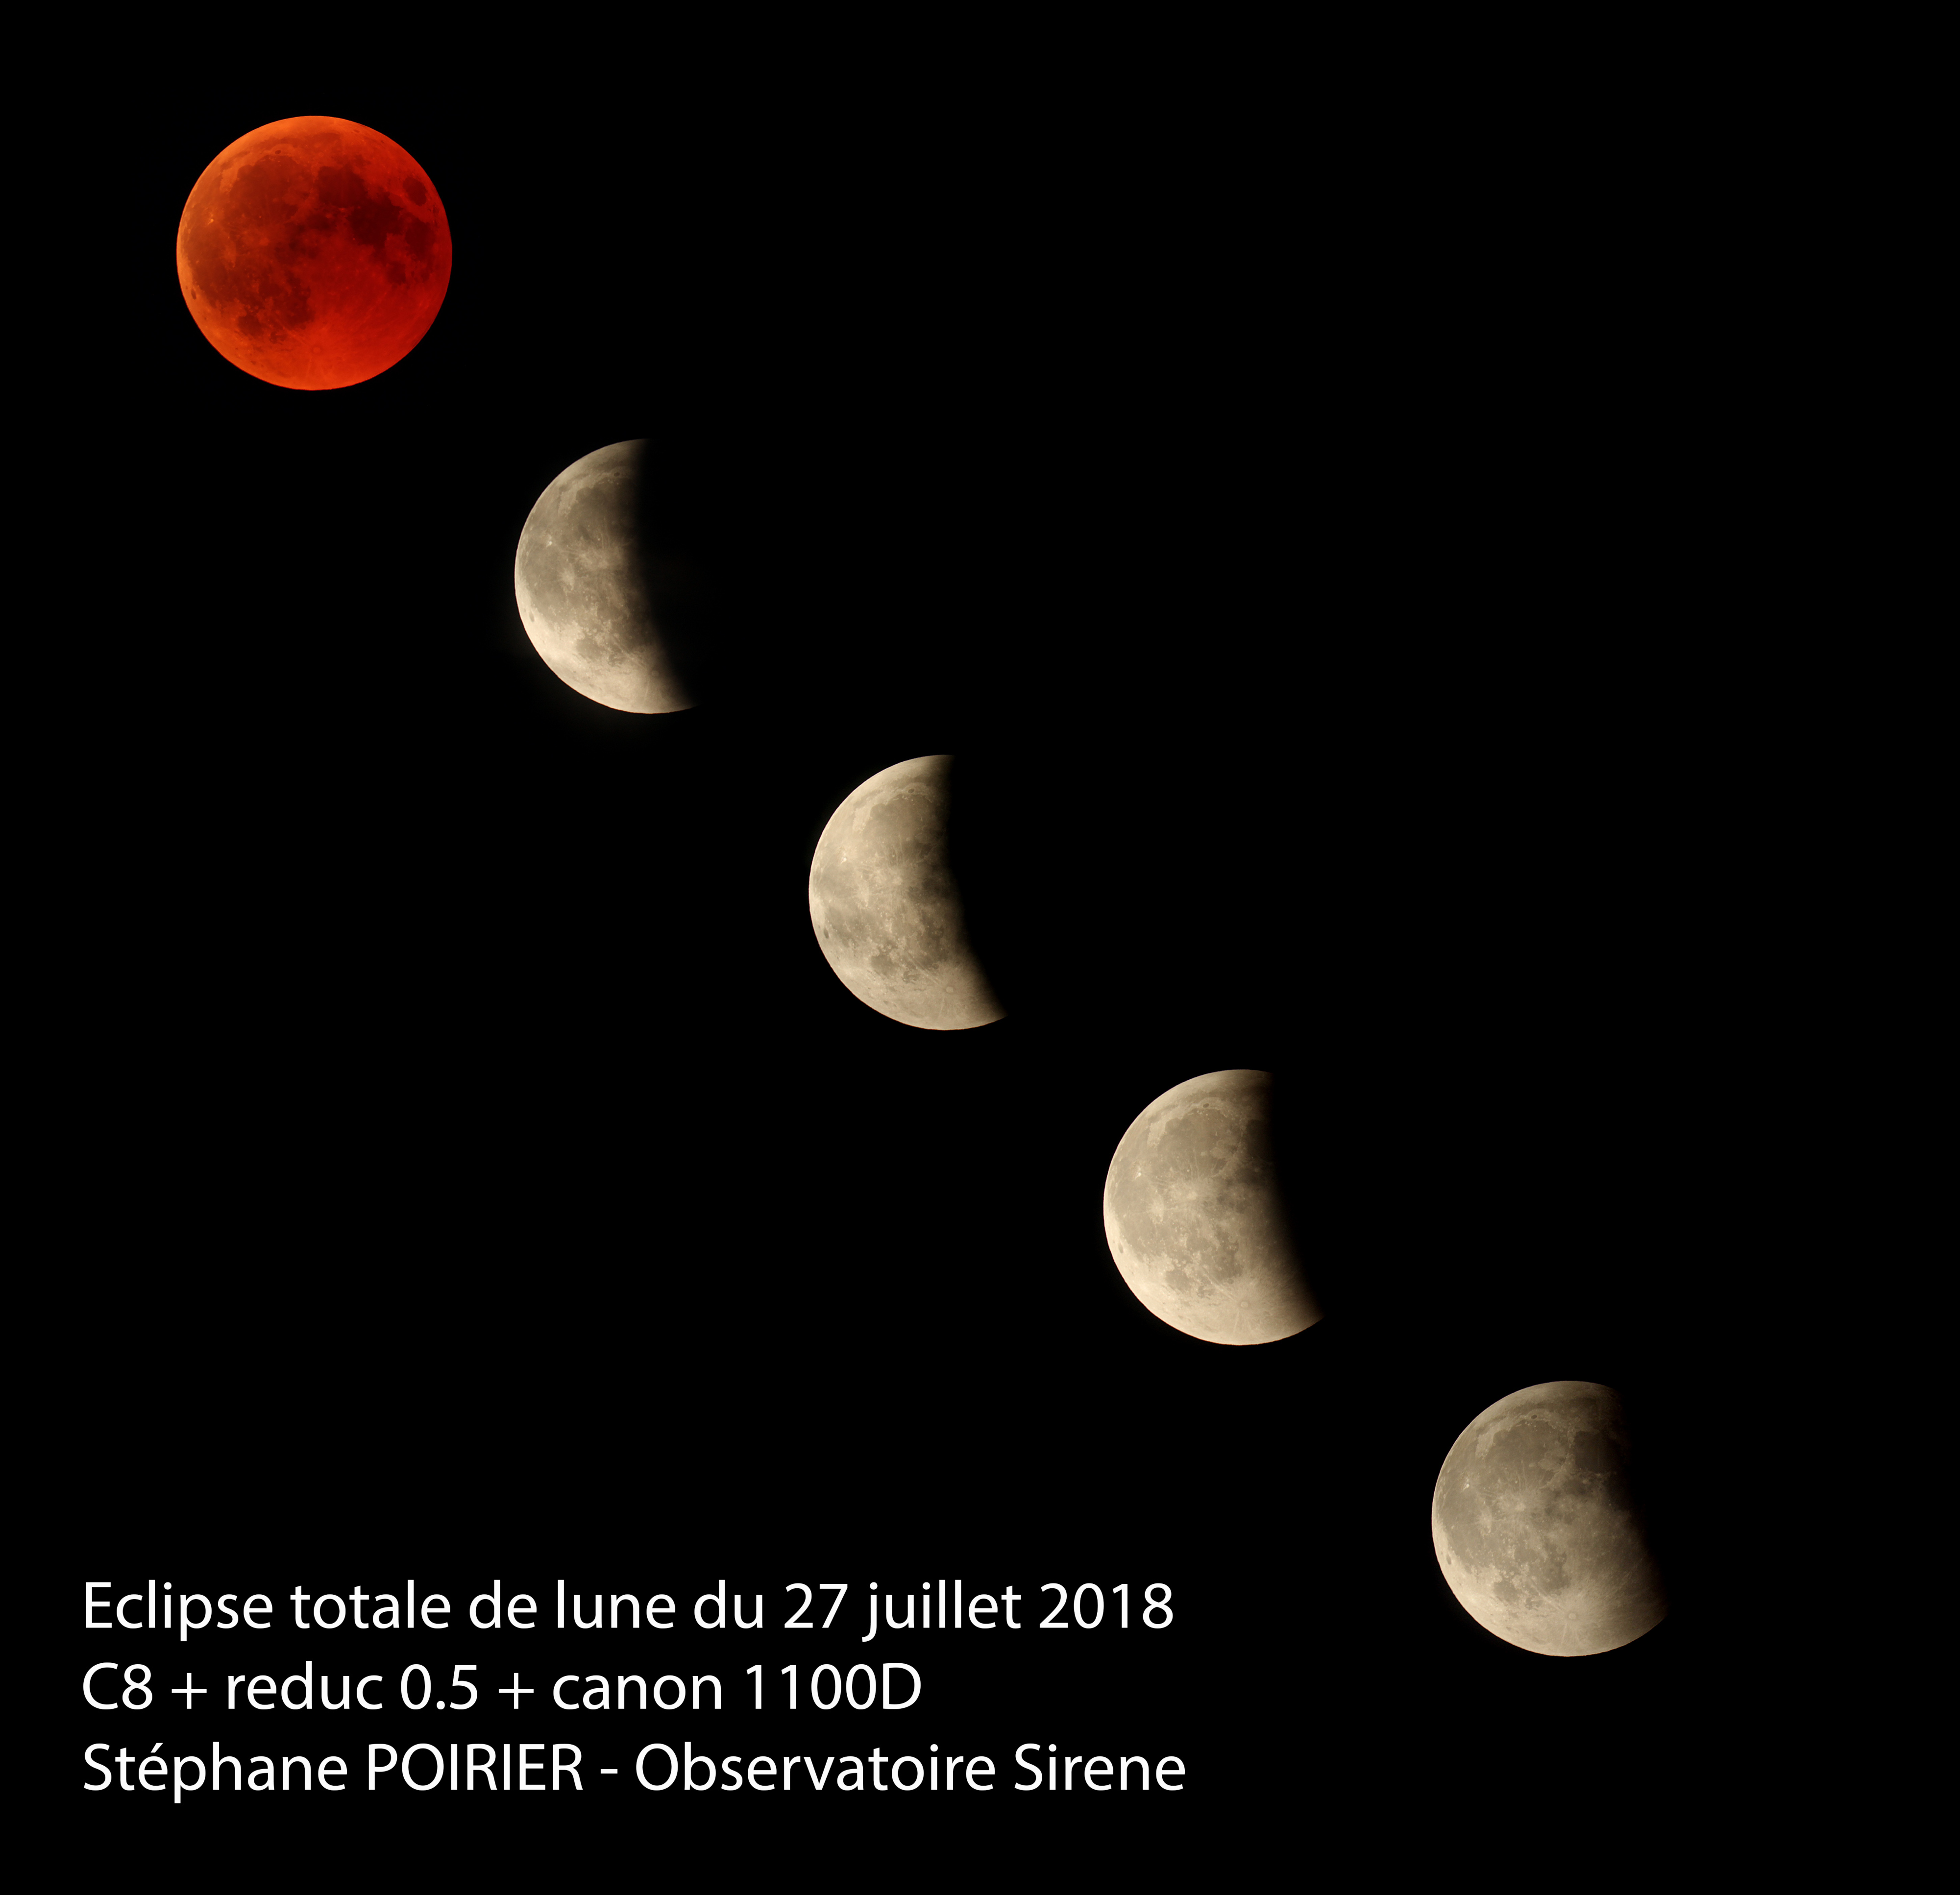 20180727-eclipse-lune-C8-red0.5-1100D-SP